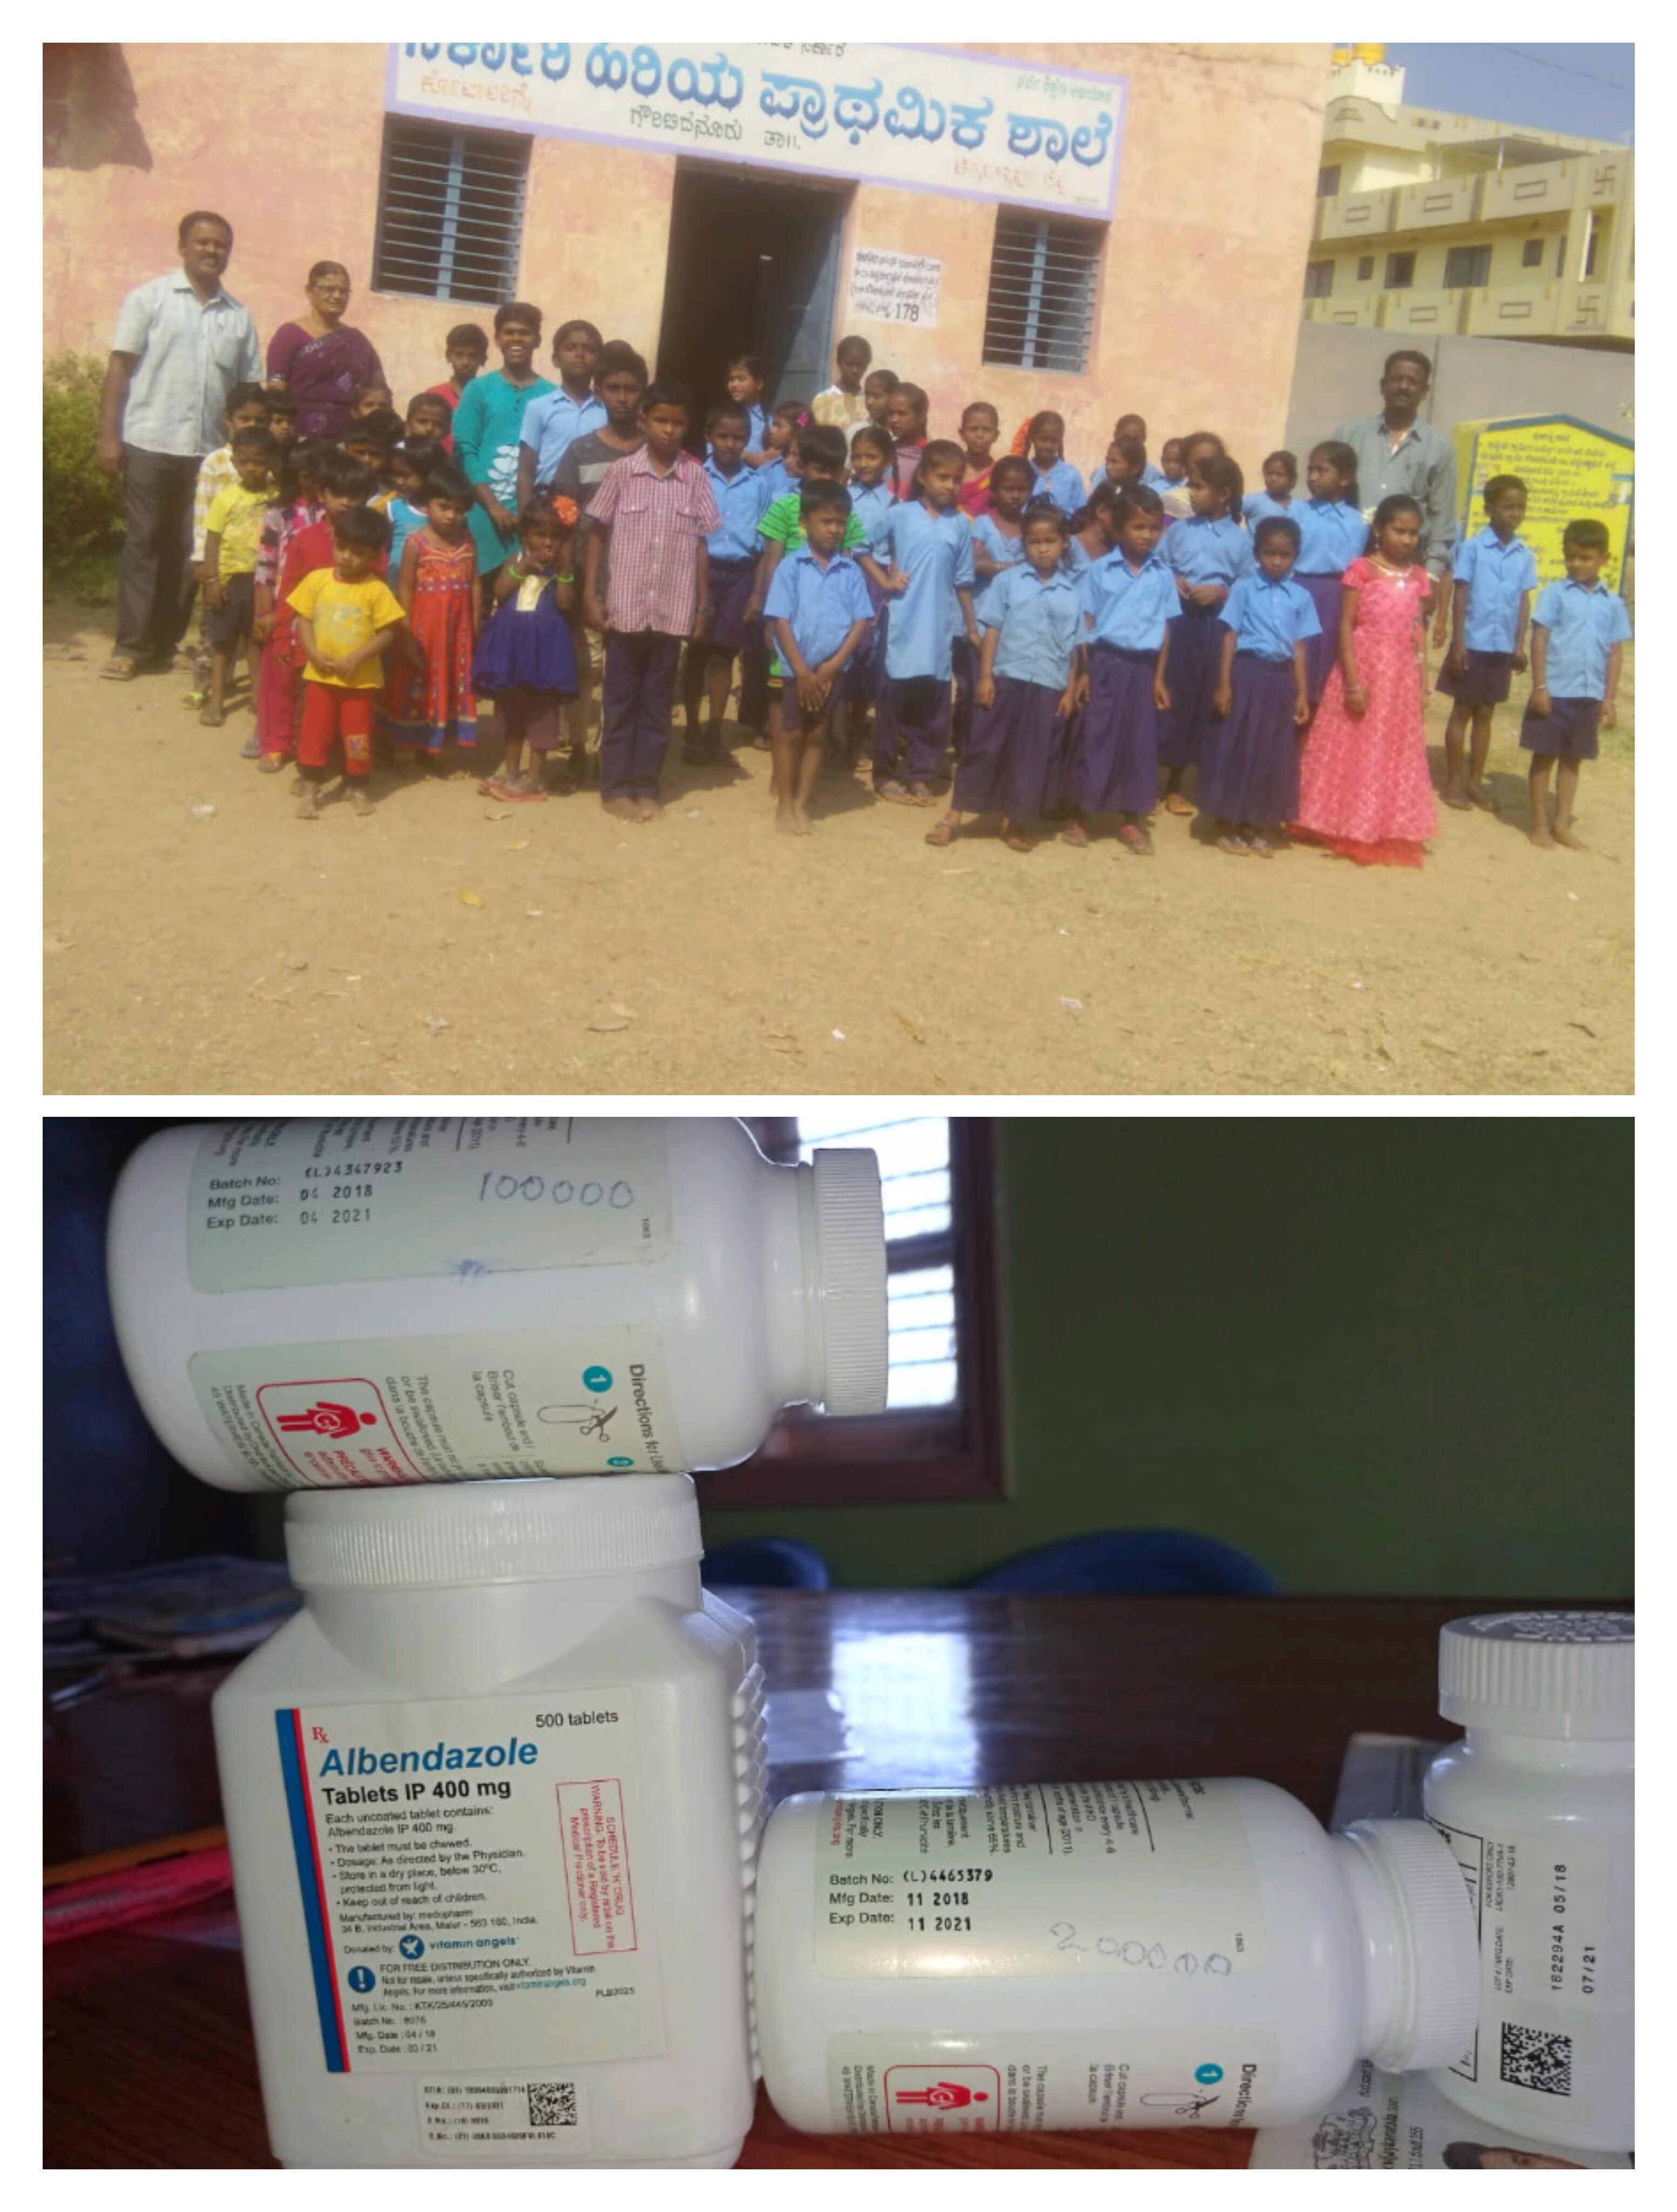 /media/sirds/1NGO-00222-SIRDS-Activities-Medicine_Distribution_to_Students.jpg